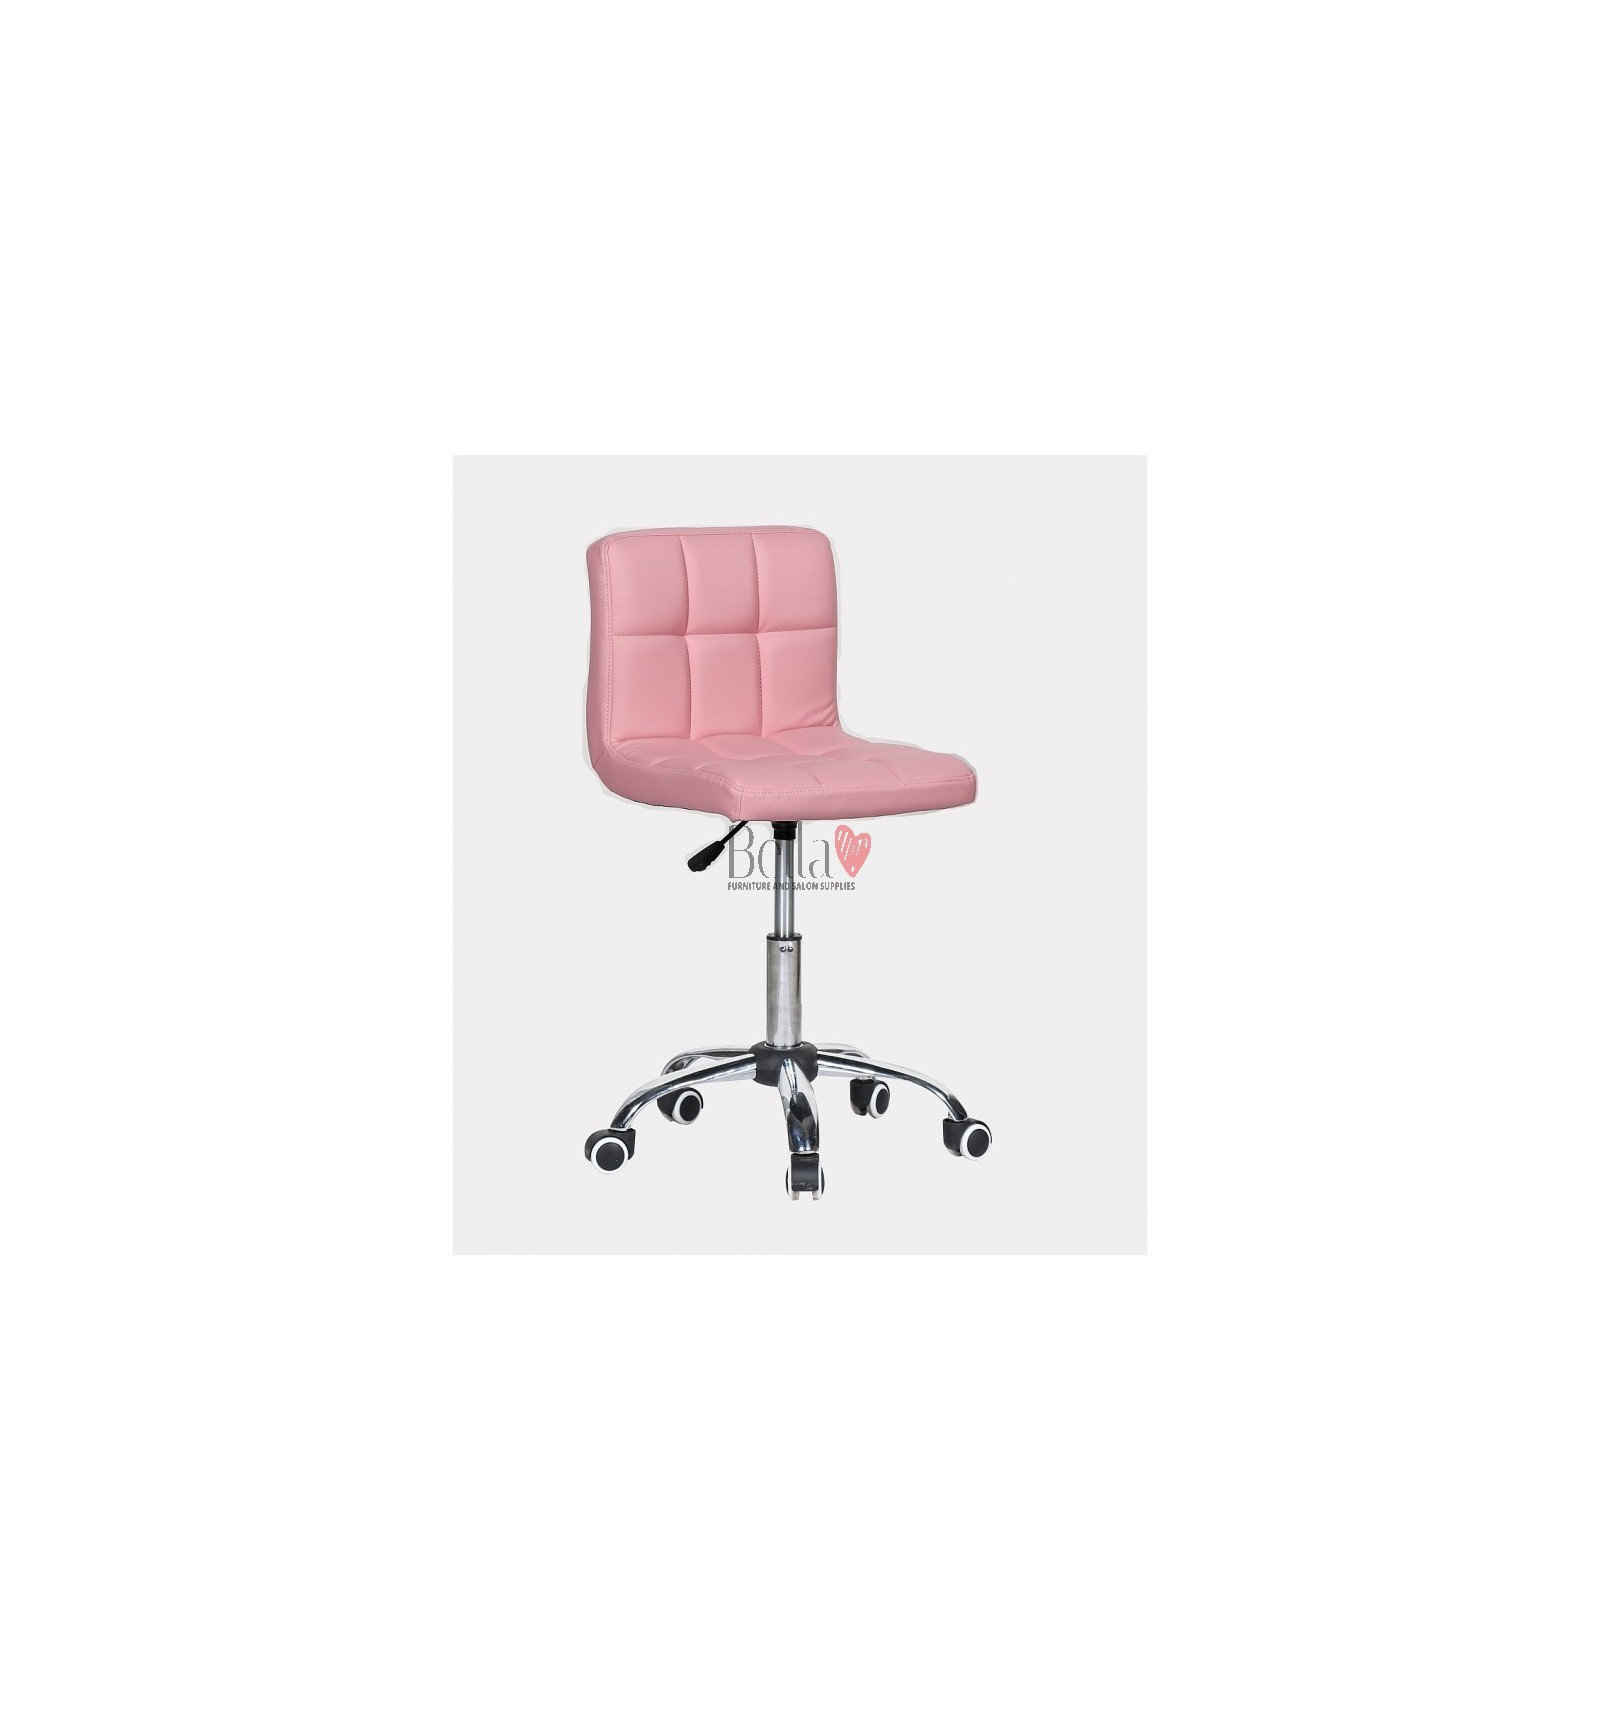 pink nail salon chairs chair beds for sale hairdressers beauty salons